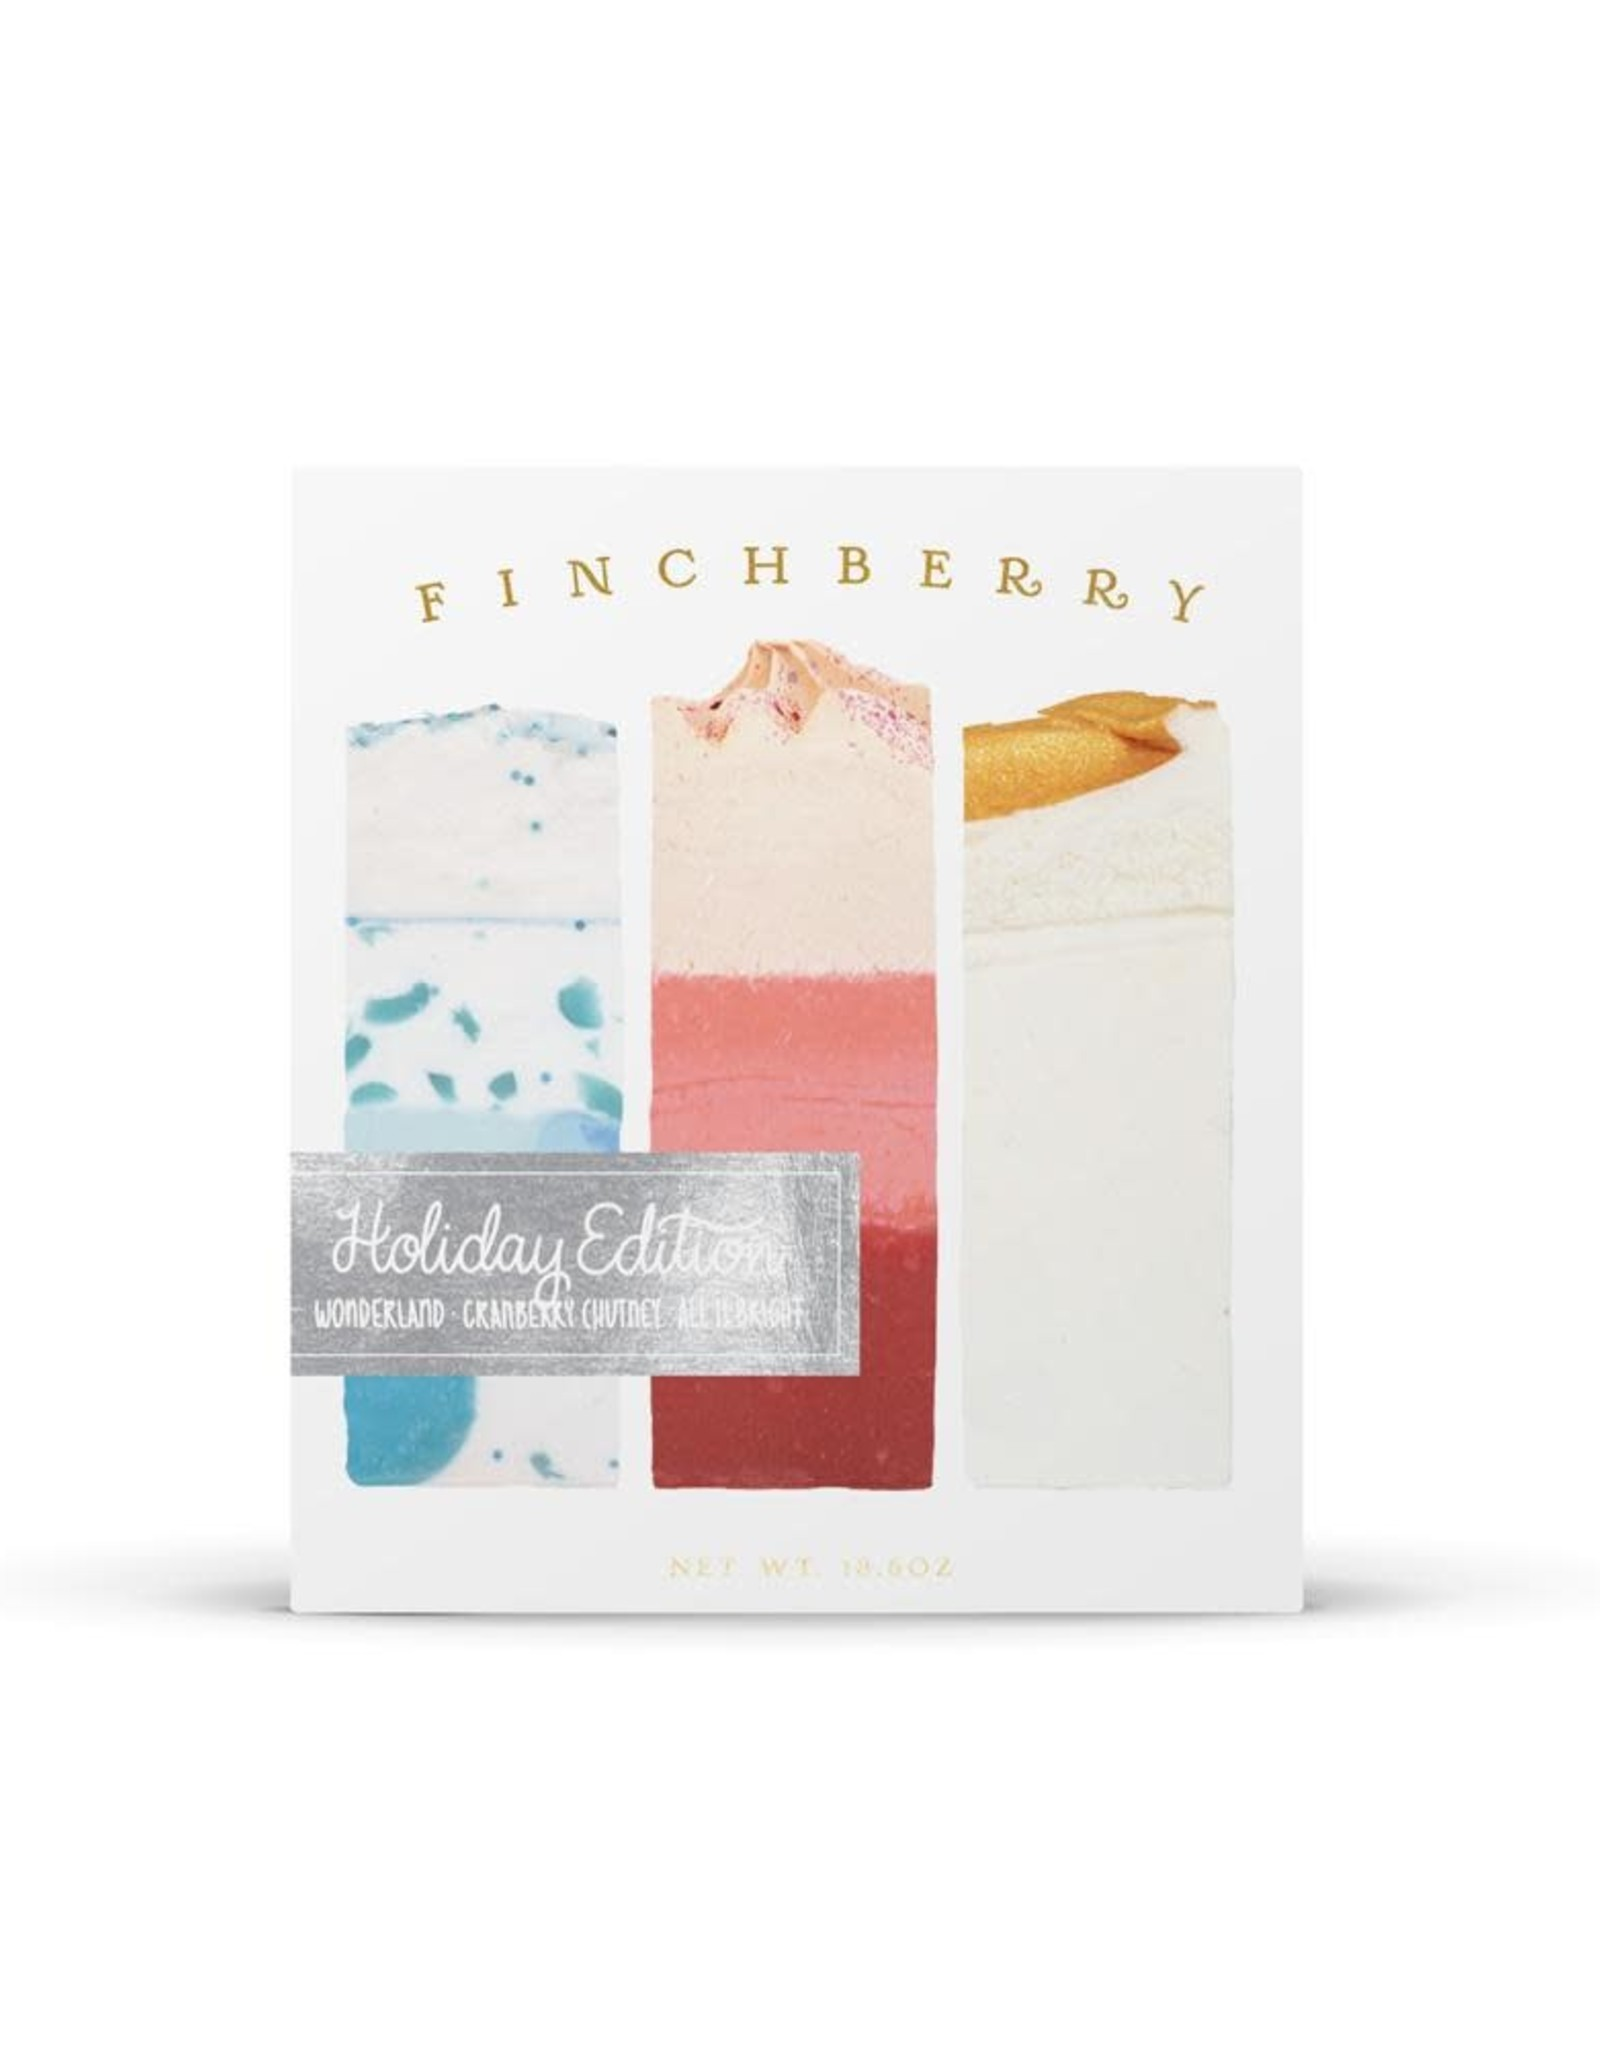 FinchBerry Soapery 3-Bar Gift Set - Holiday Edition